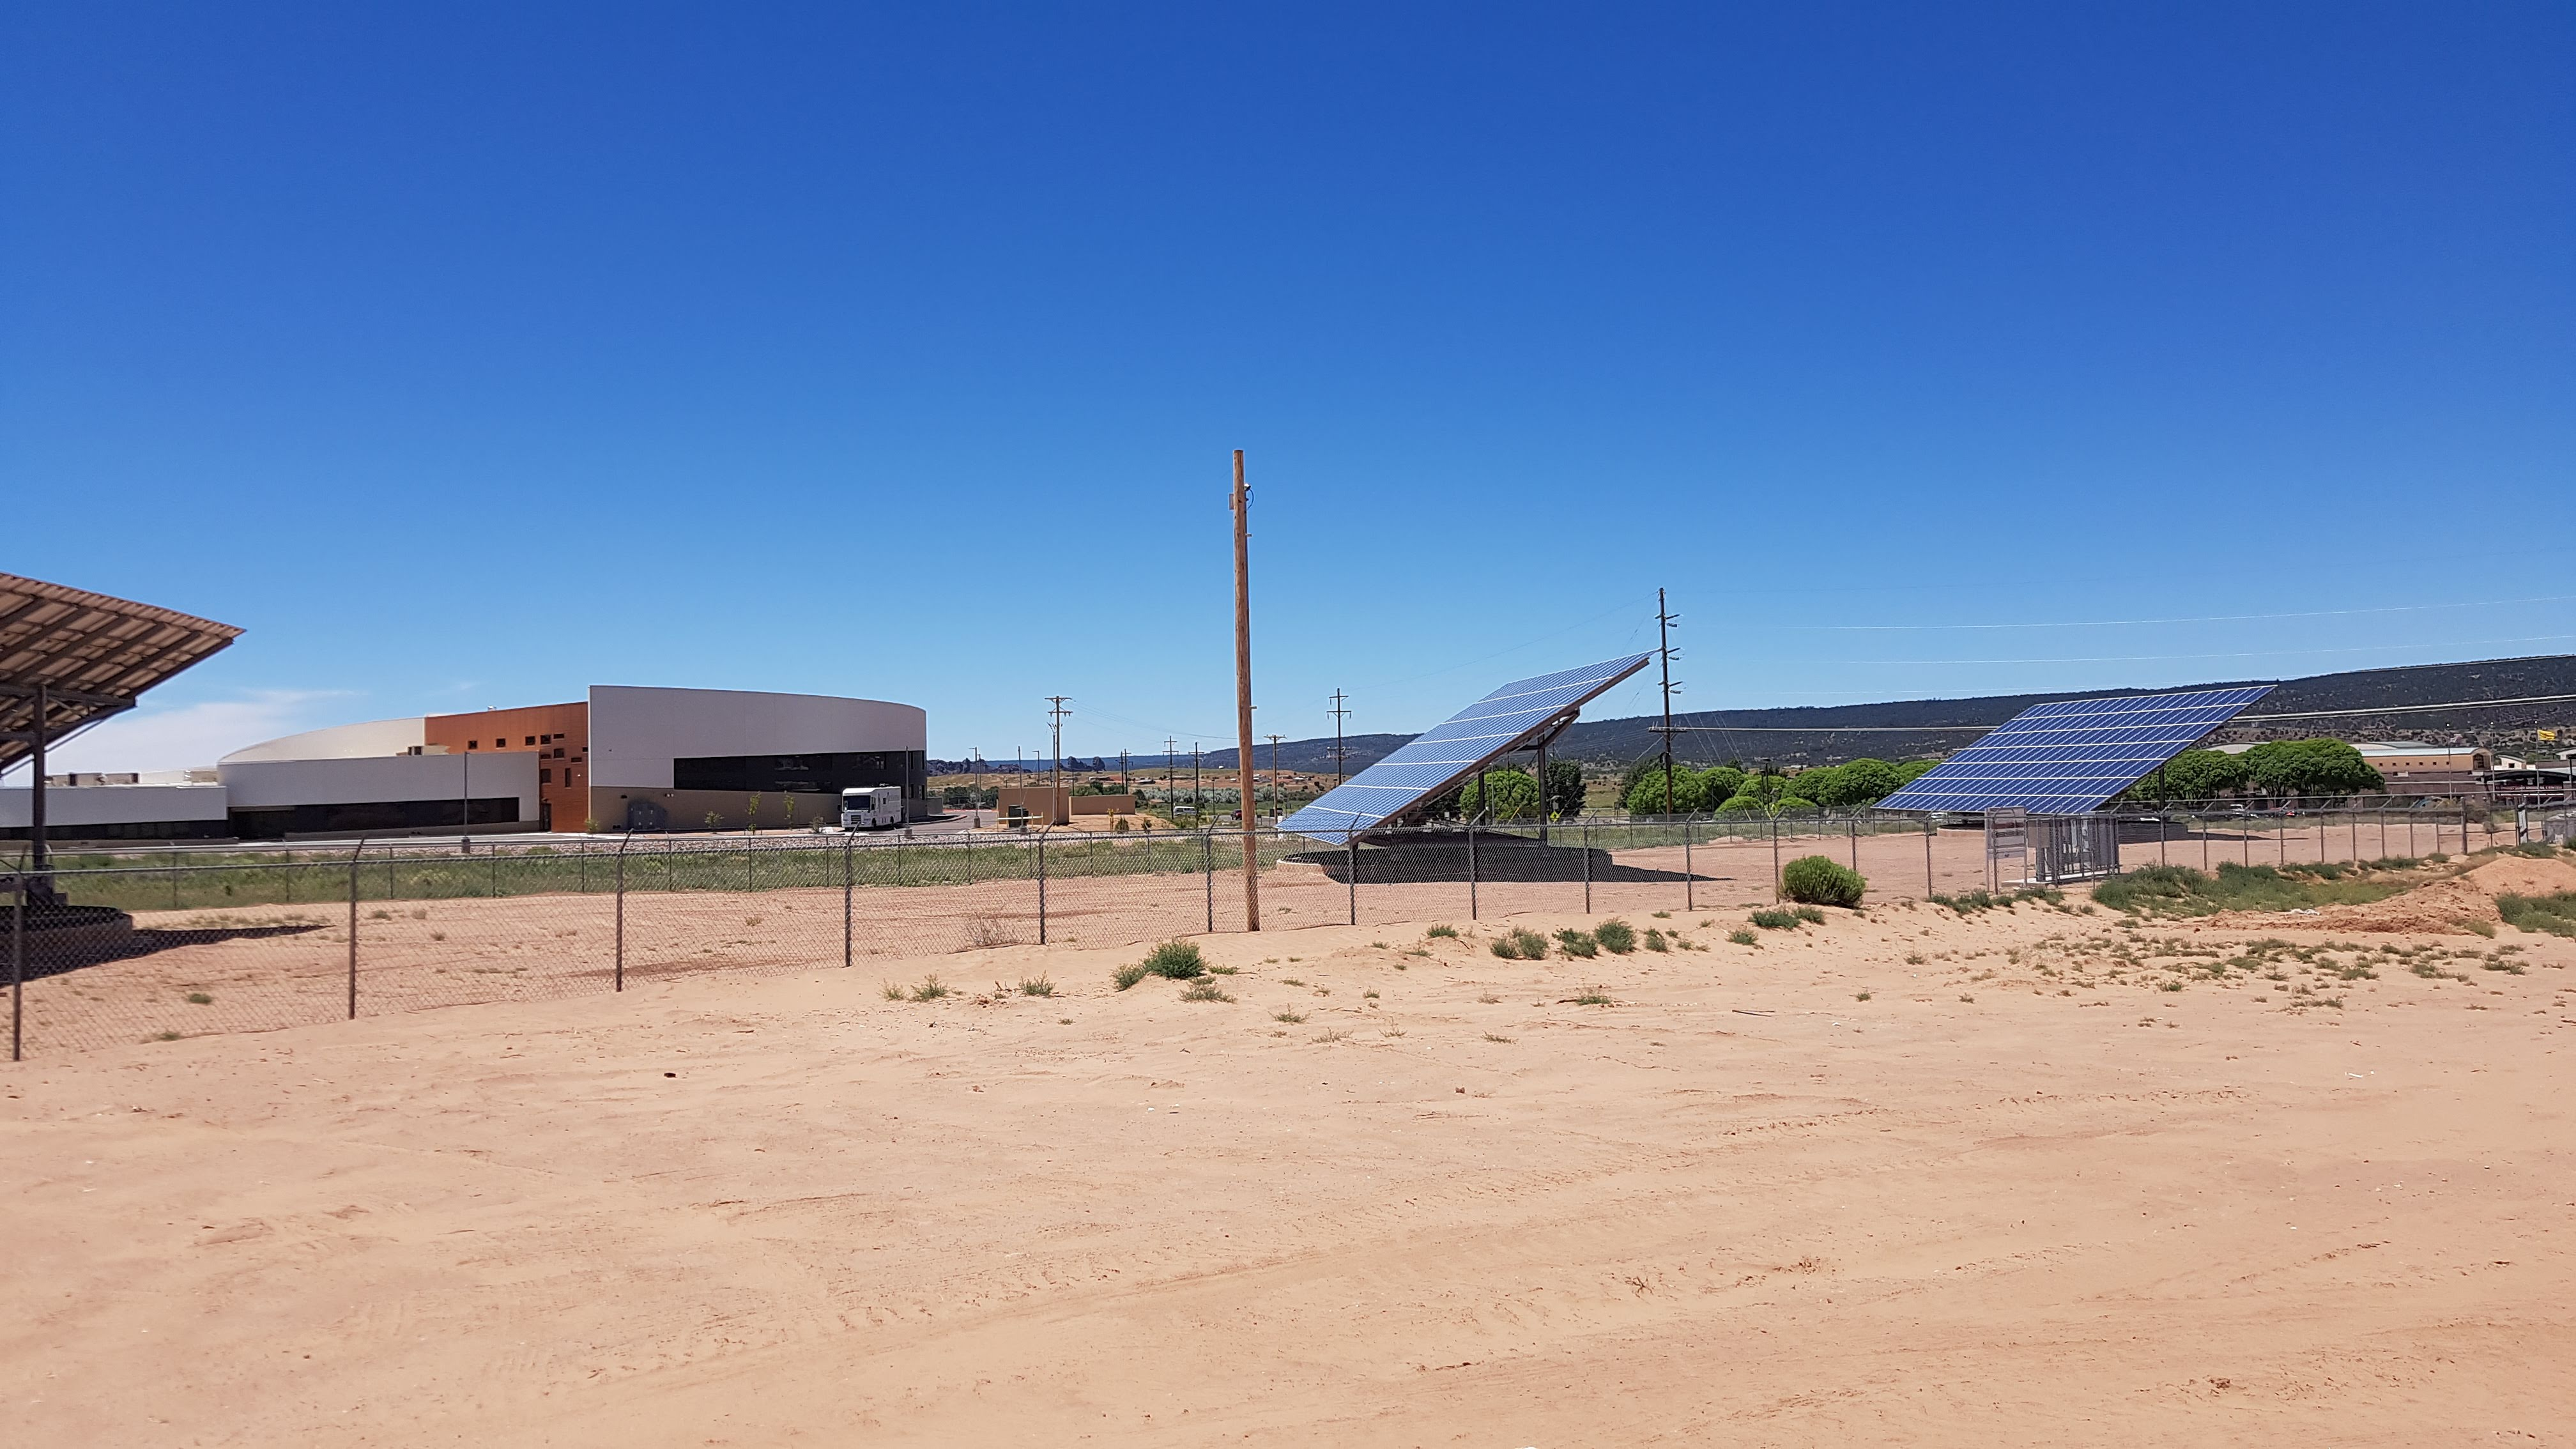 Solar panels for the Kayenta Solar Project on the Navajo Nation